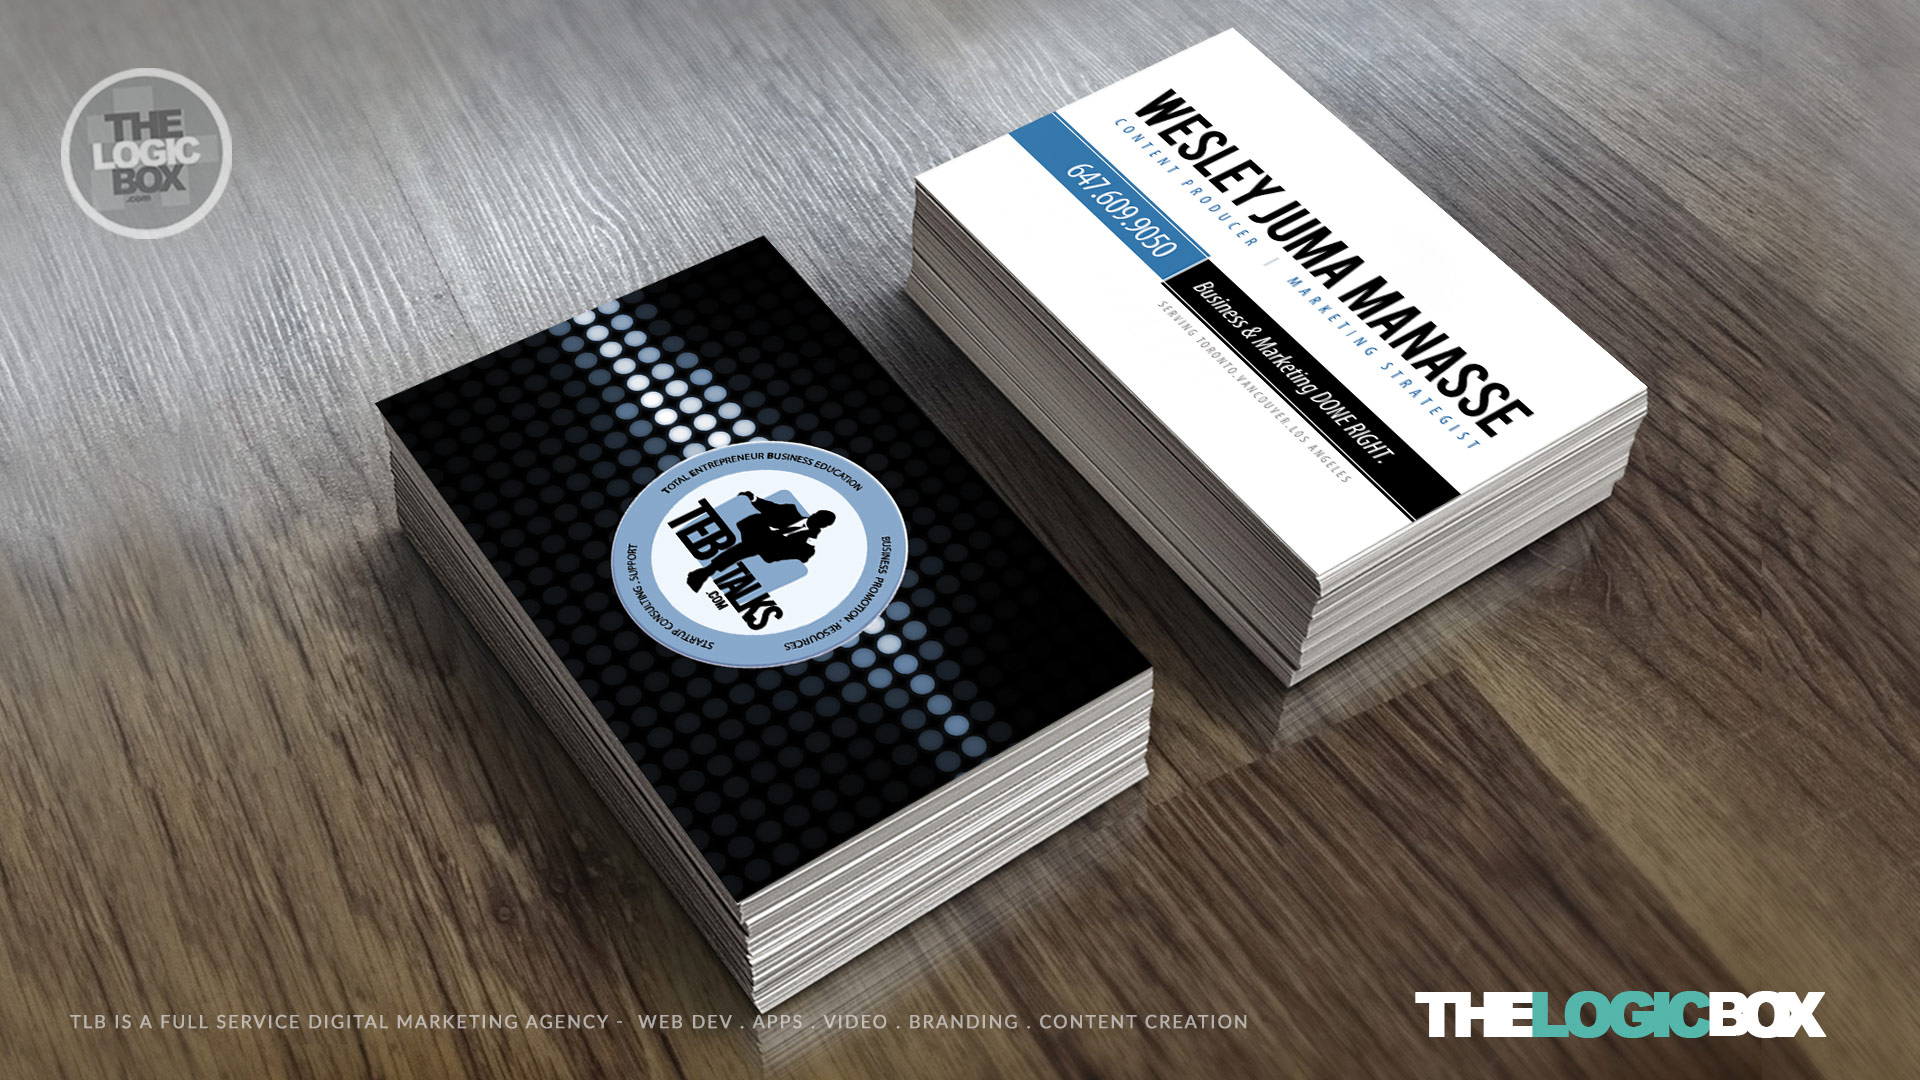 Business-Card-the-logic-box-agency-5-tebtalks